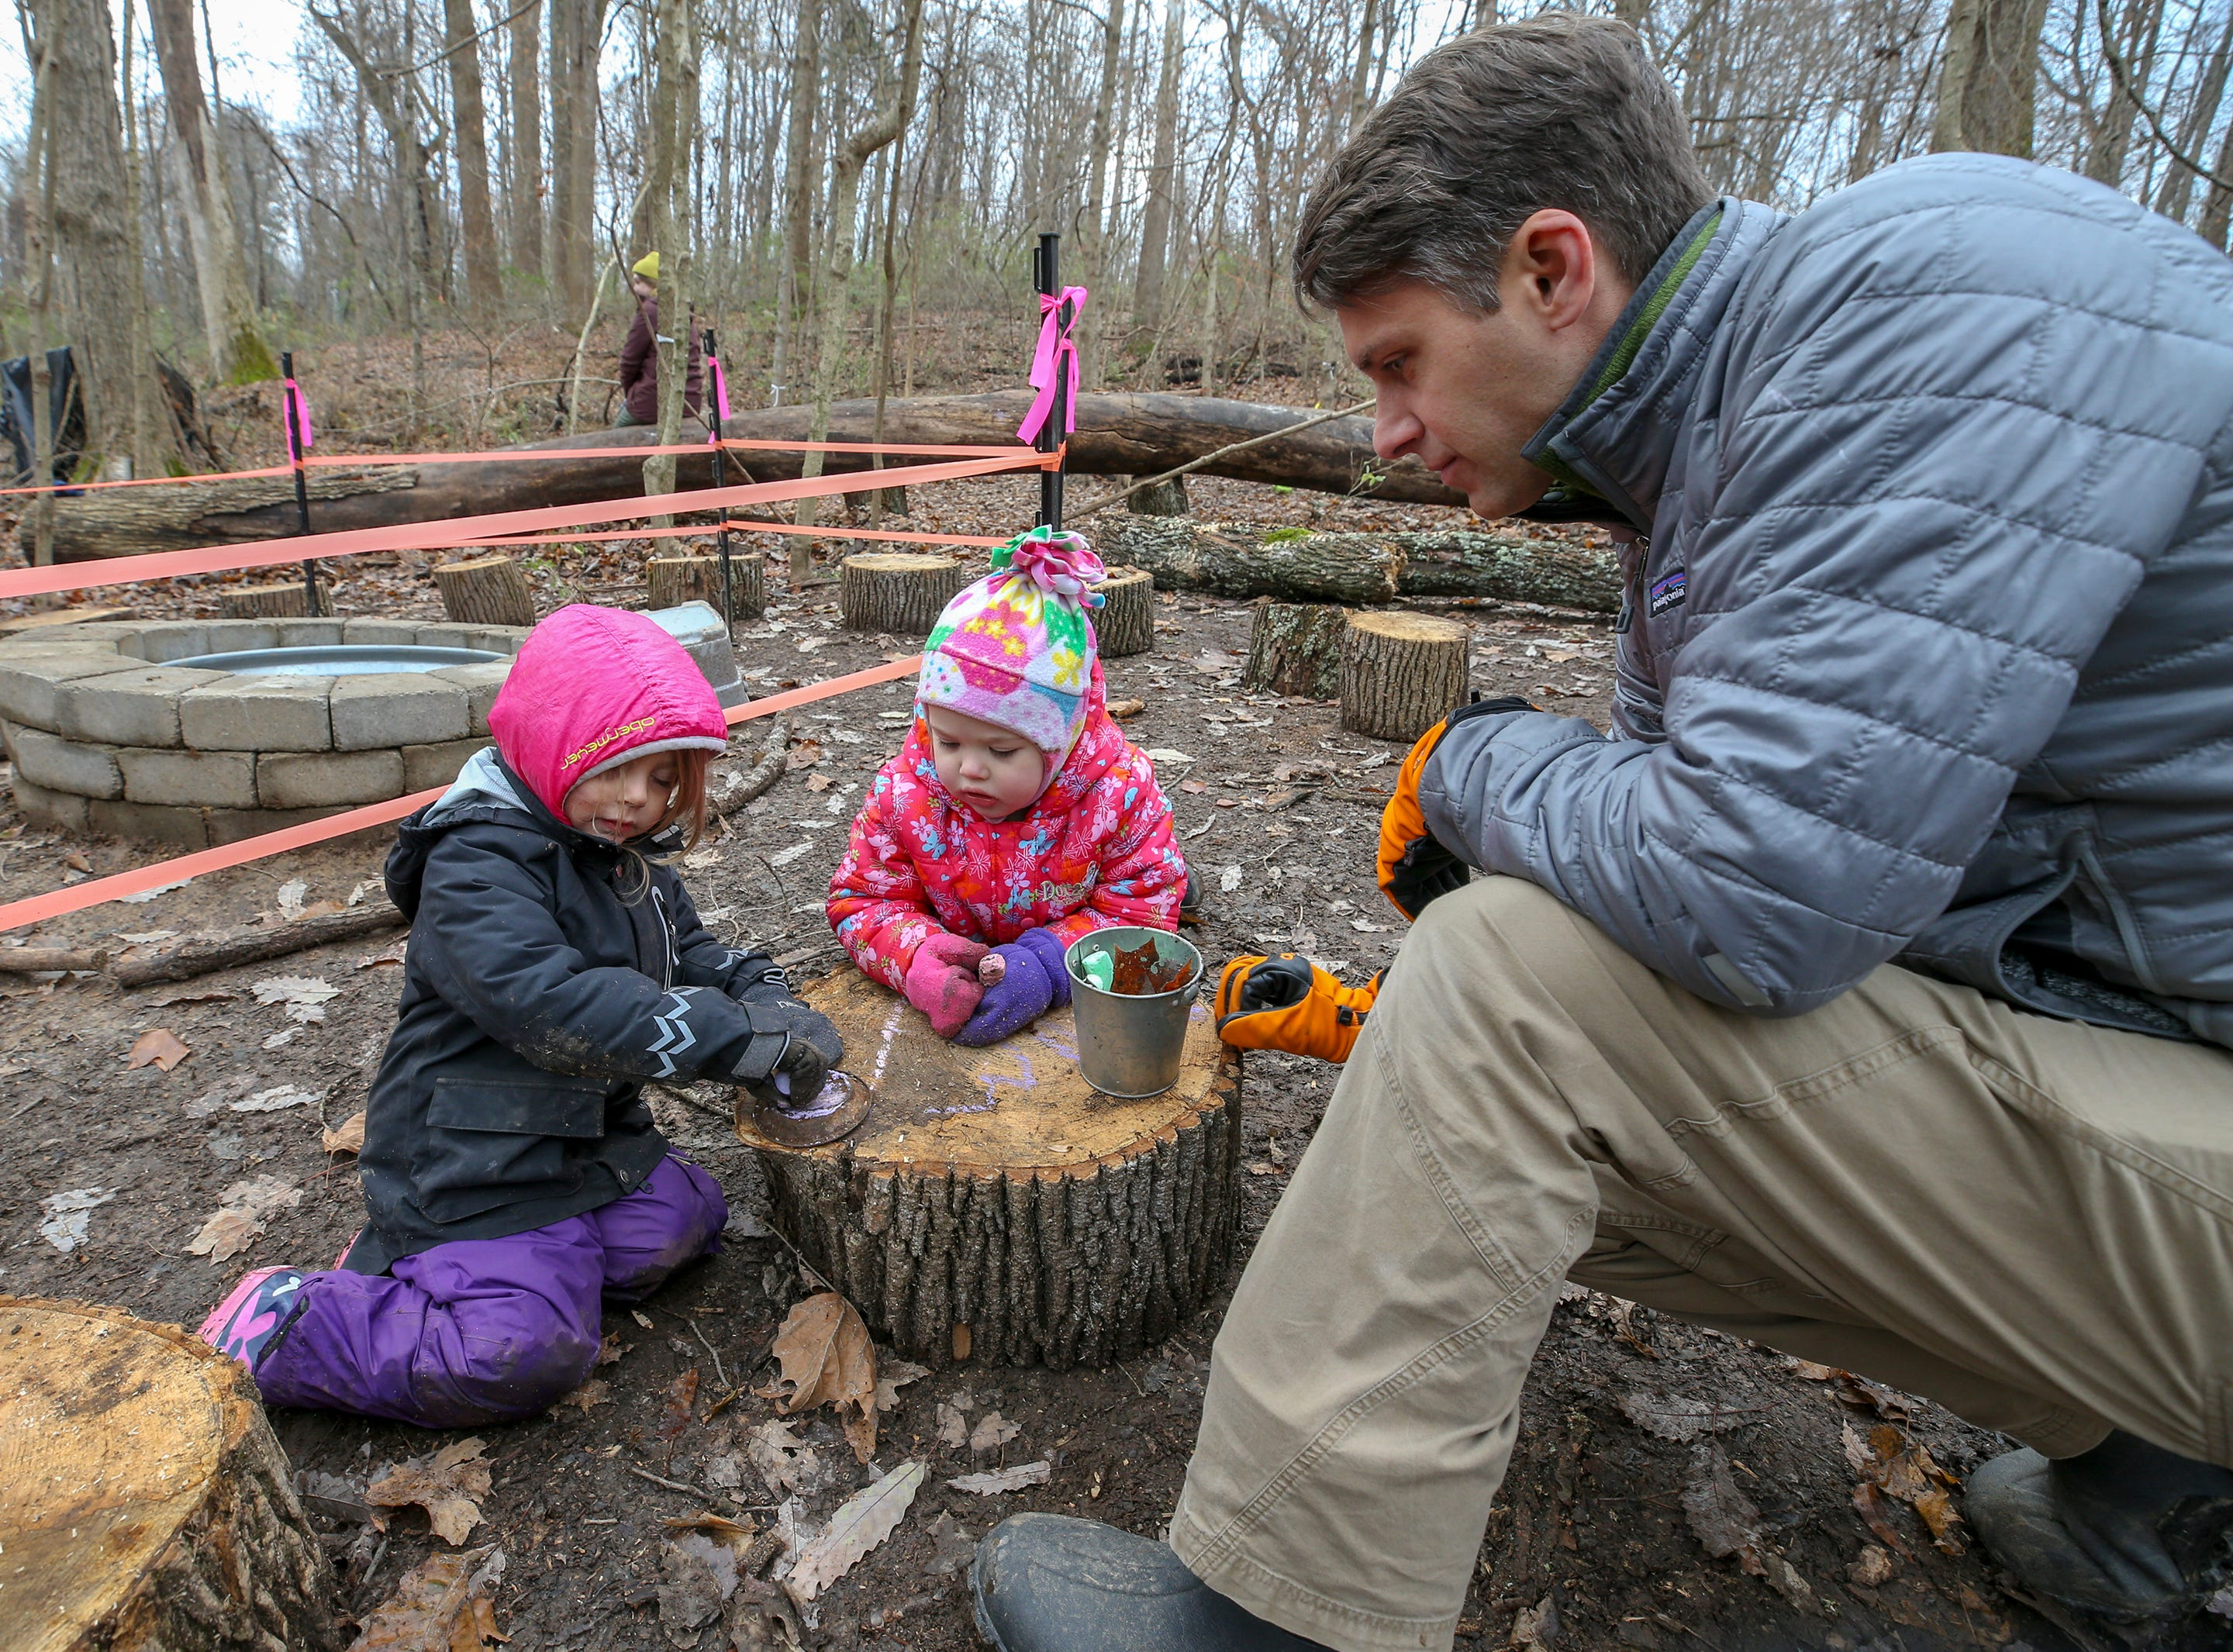 Ryan Devlin, Thrive Forest School founder, works with Piper Riddle and Hannah Rose O'Connell at Creasey Mahan Nature Preserve.November 19, 2018